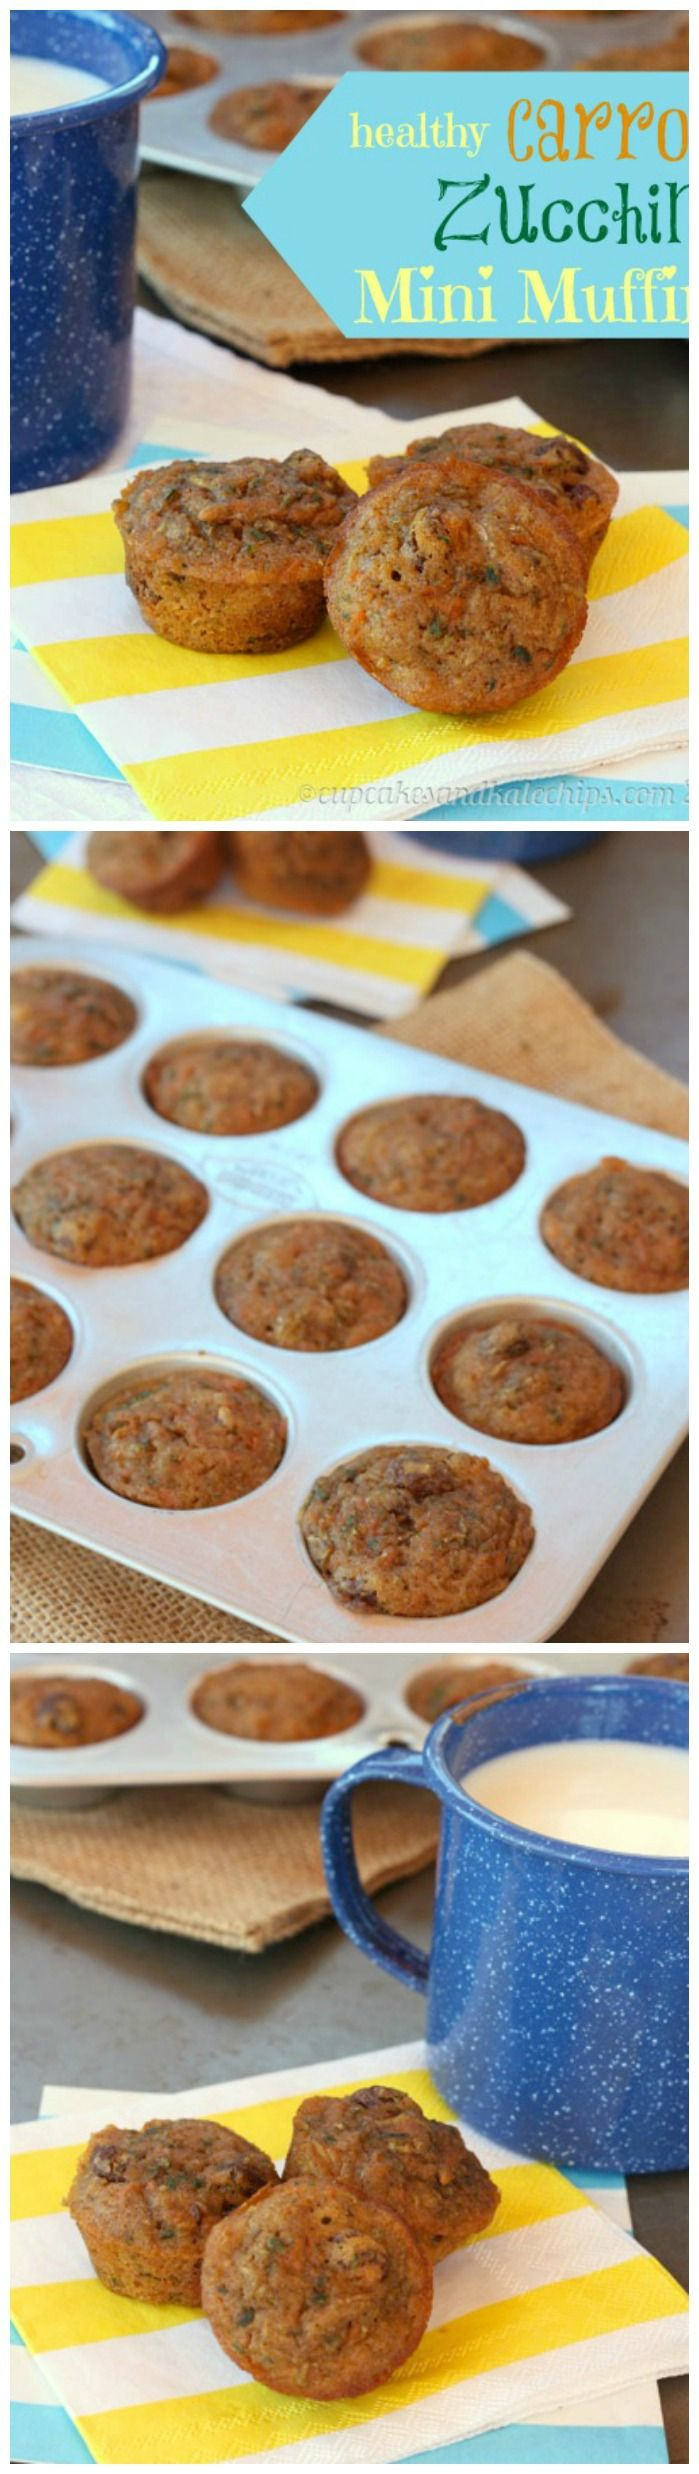 Healthy Carrot Zuchini Mini Muffins | via @Jenny Russell Melrose from The NY Melrose Family